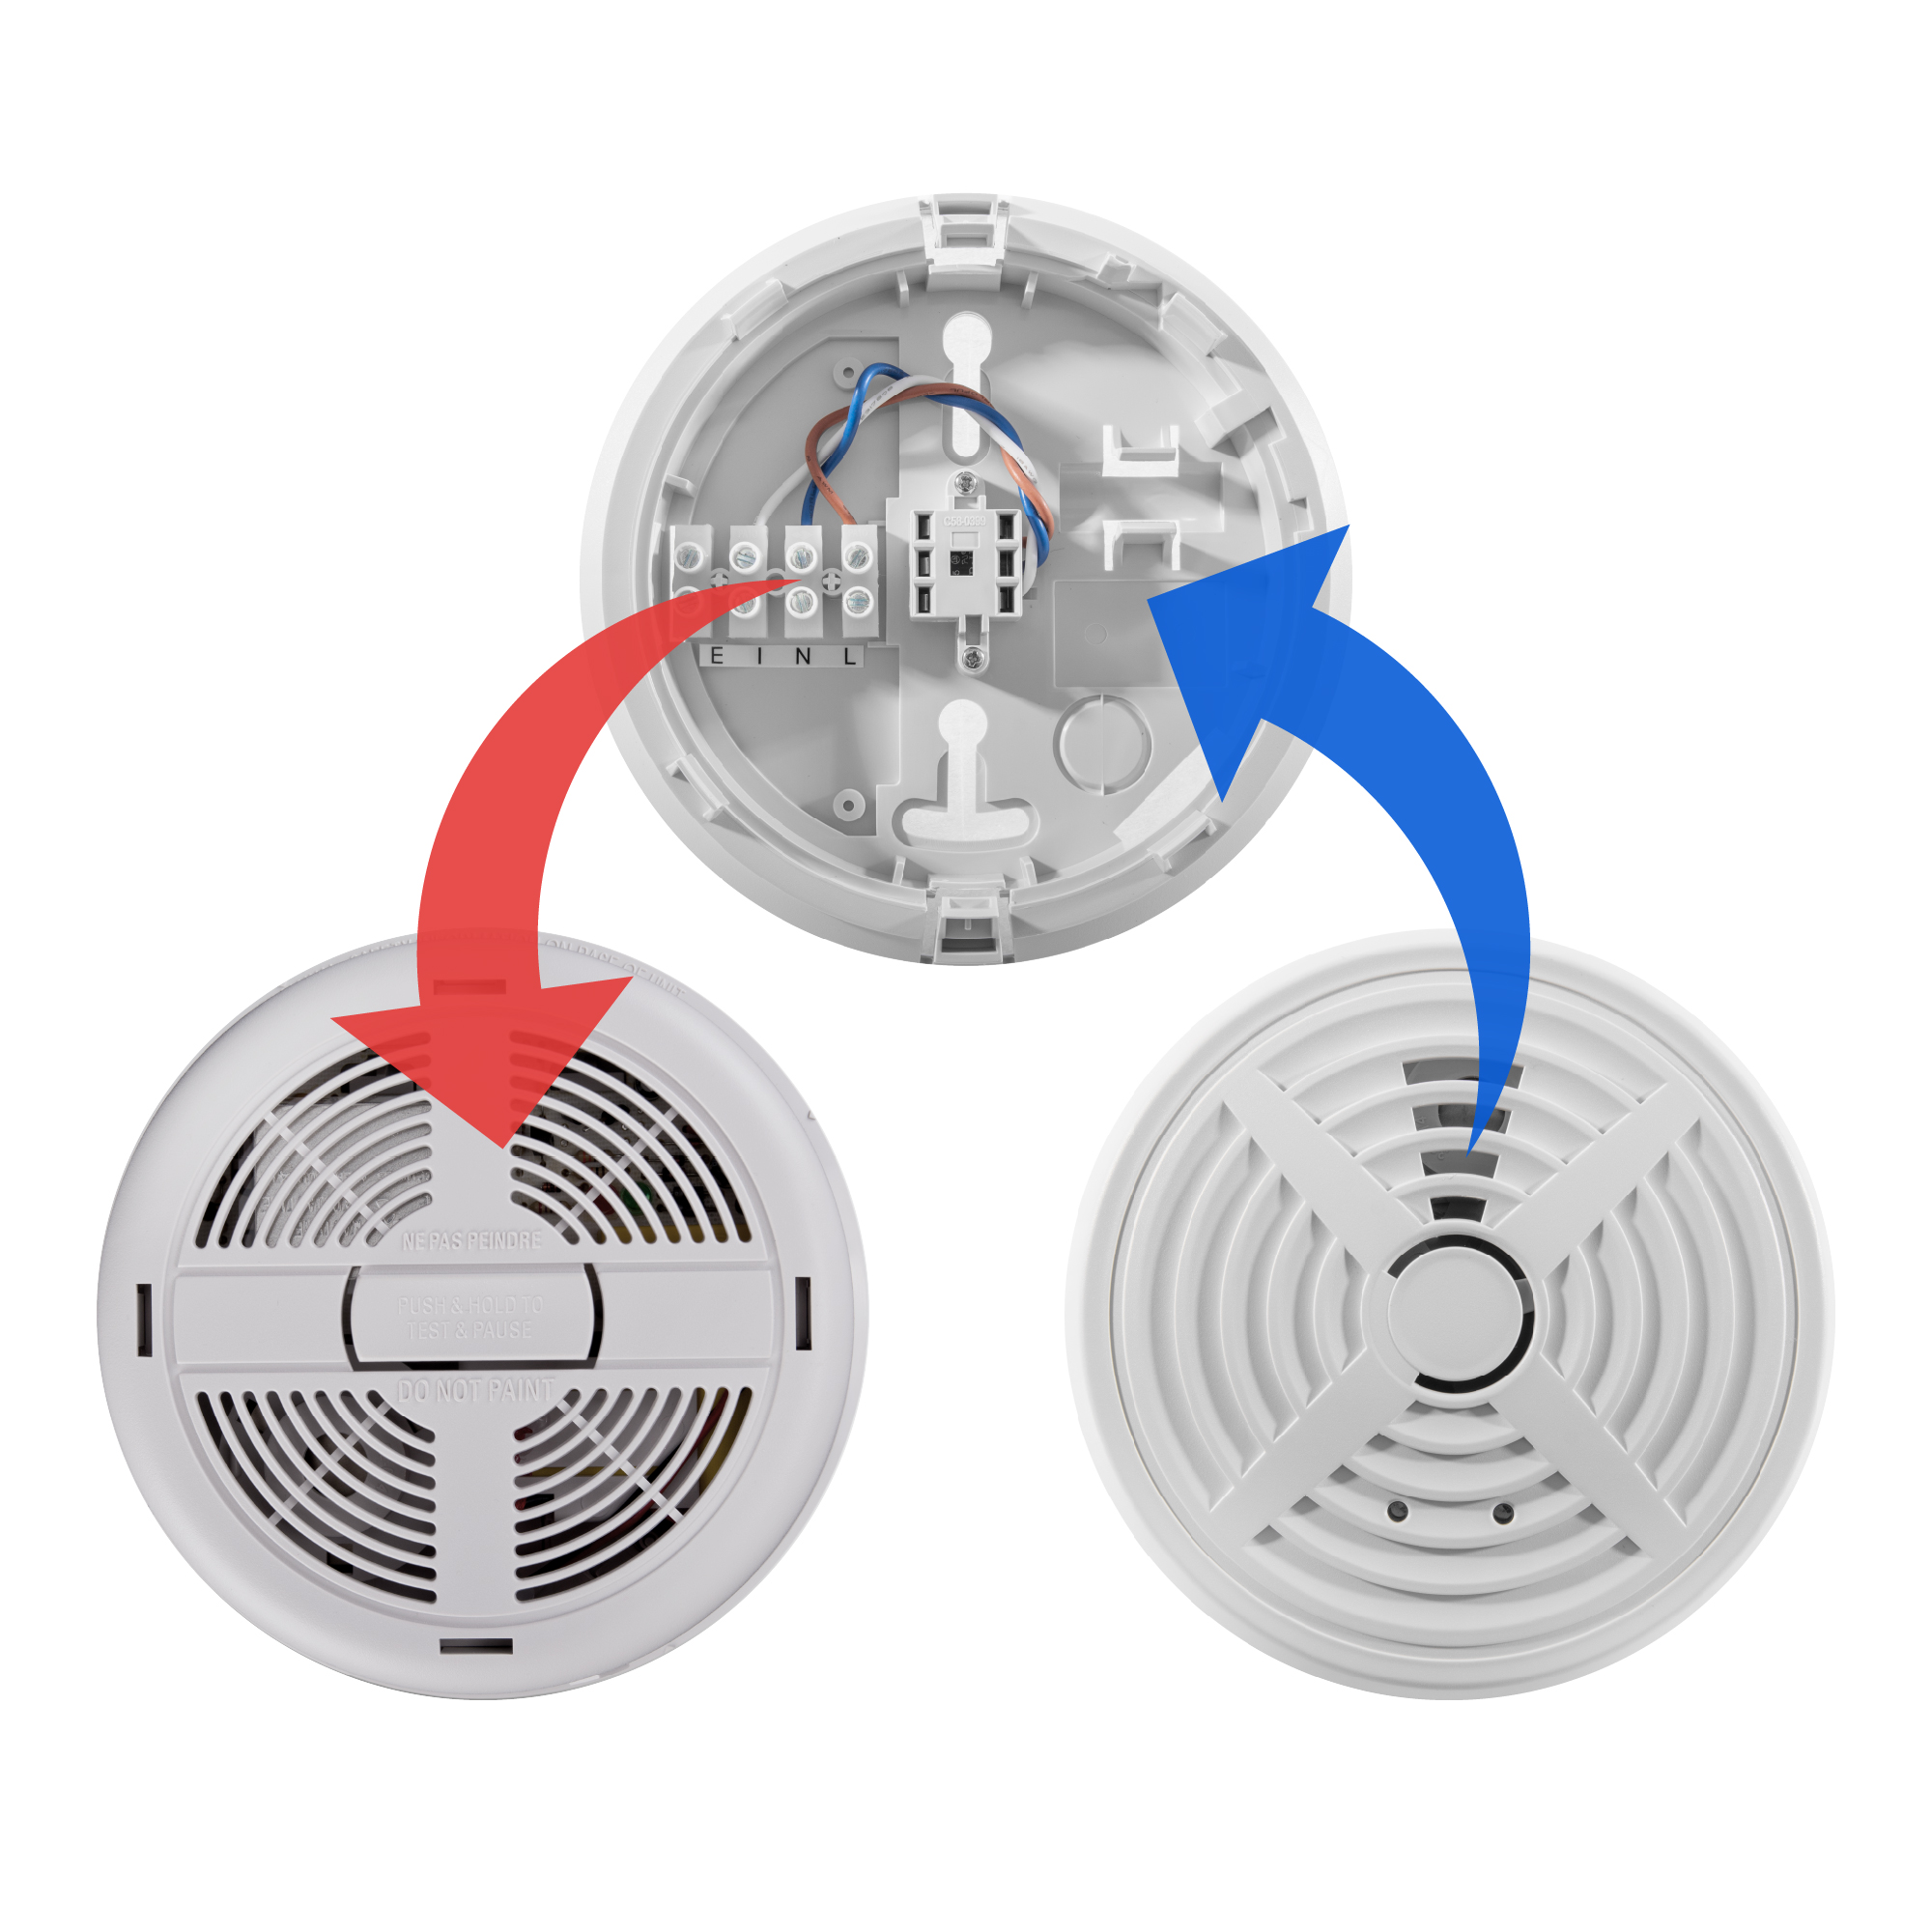 Replacement for BRK 760MBX and 770MBX mains powered smoke alarms